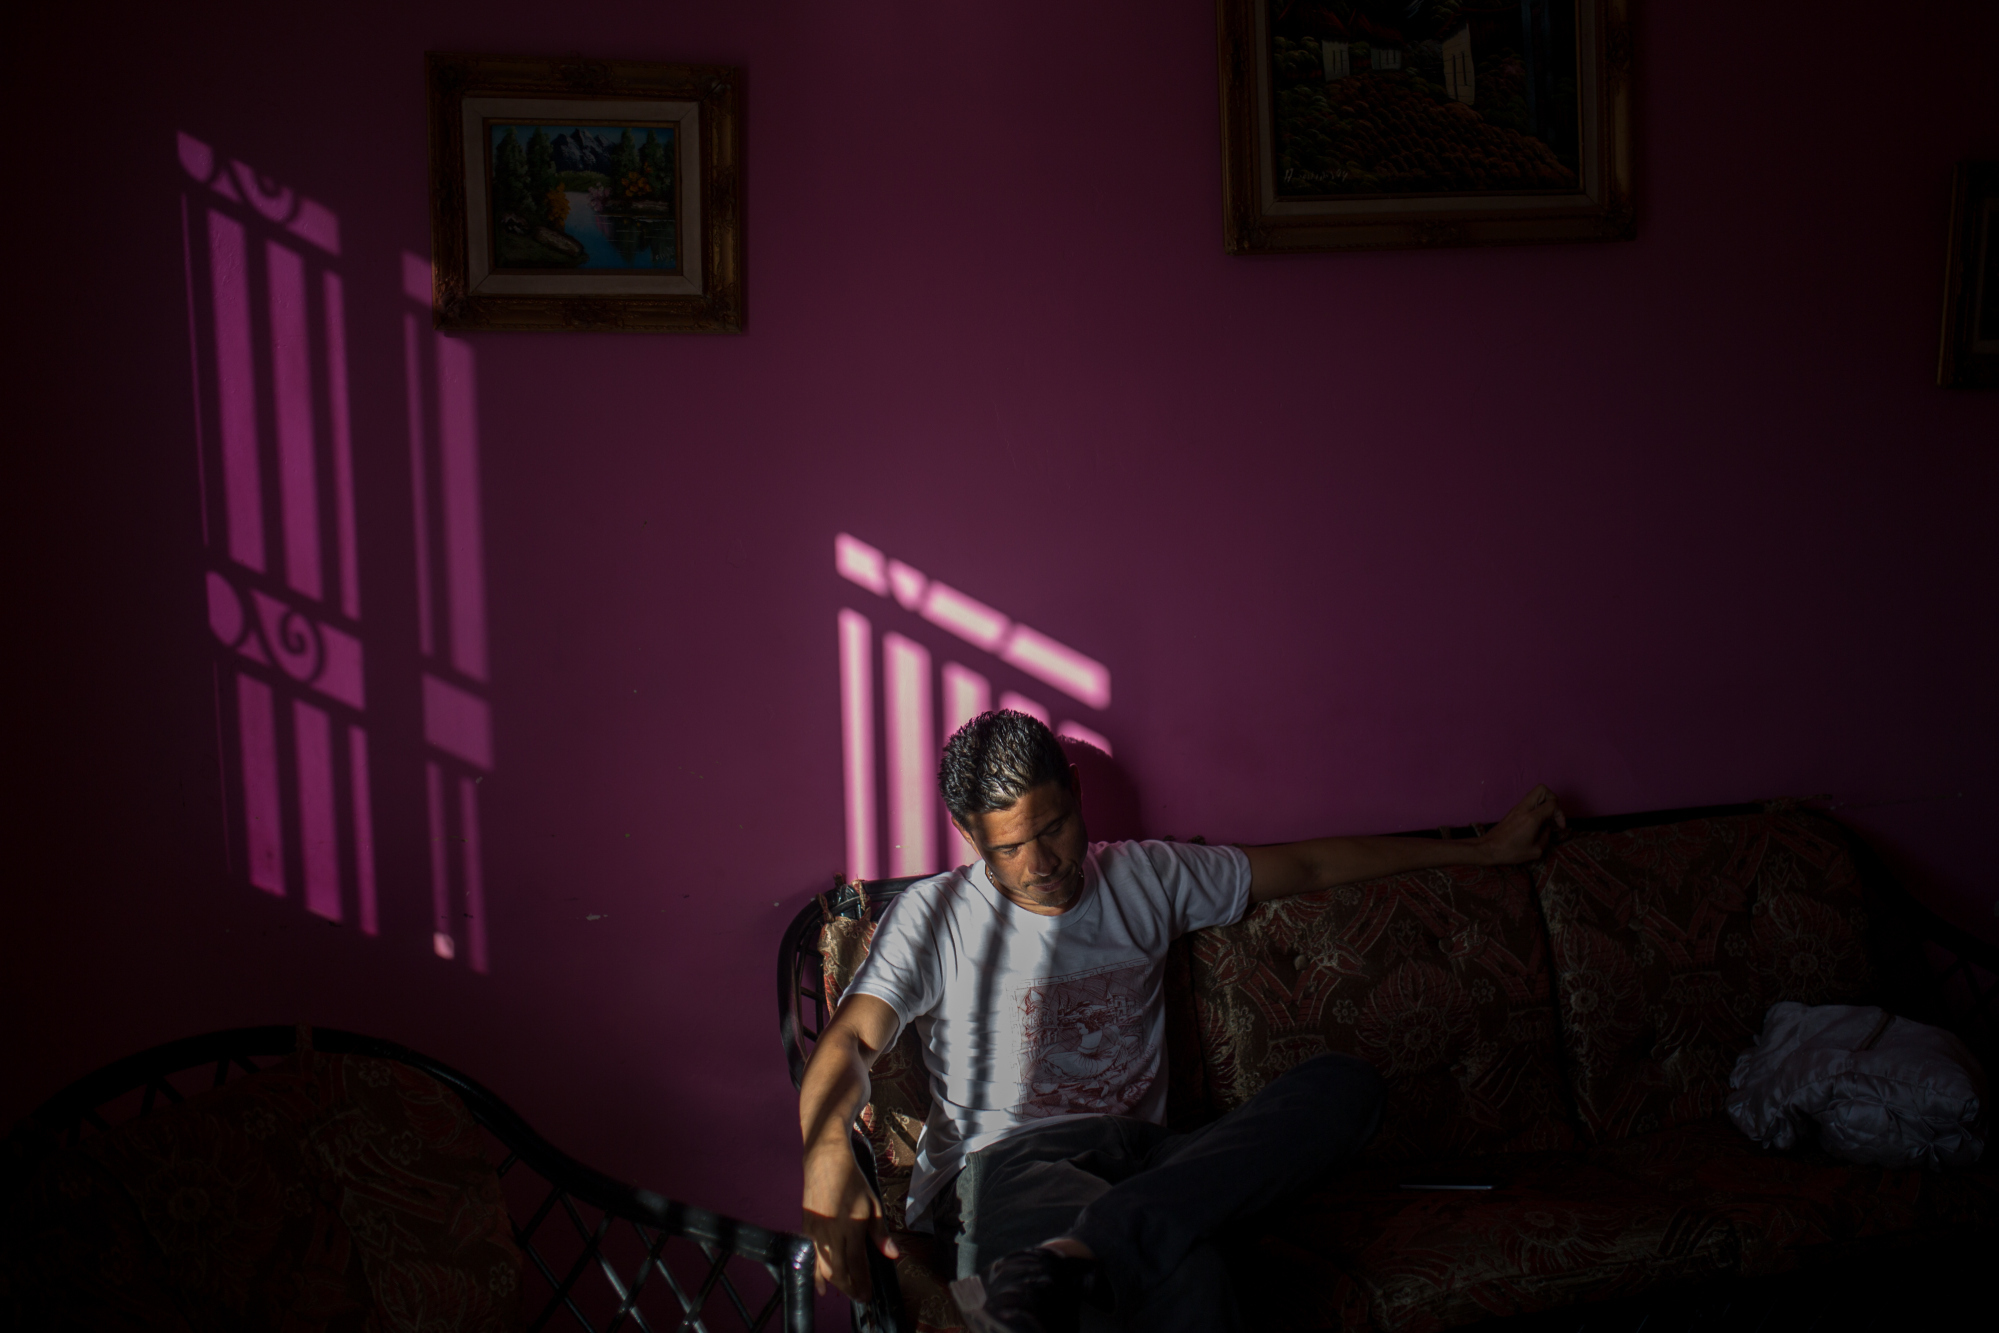 Endy Torres used to enjoy company-supplied meals of rice, salad, a protein, fruit, juice and dessert. Now he goes without. Photographer: Wil Riera/Bloomberg